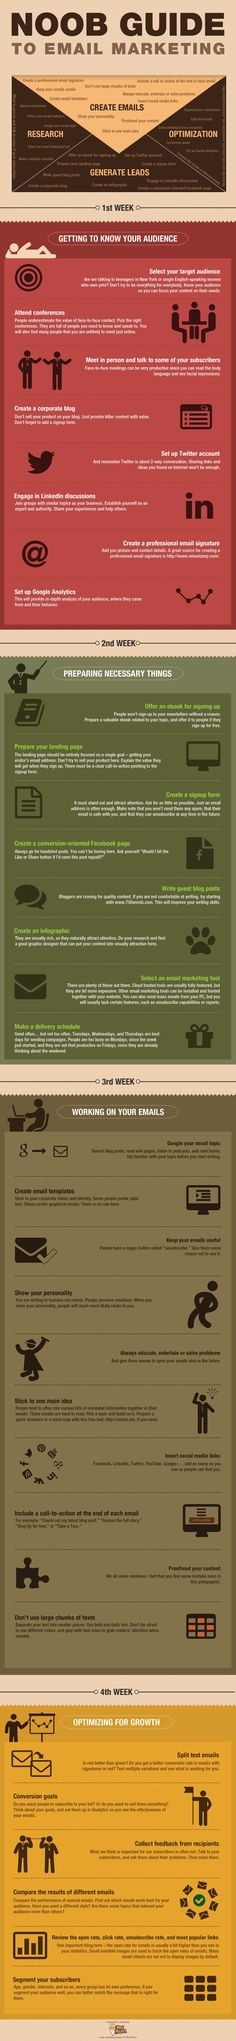 Noob Guide to #Email Marketing Infographic